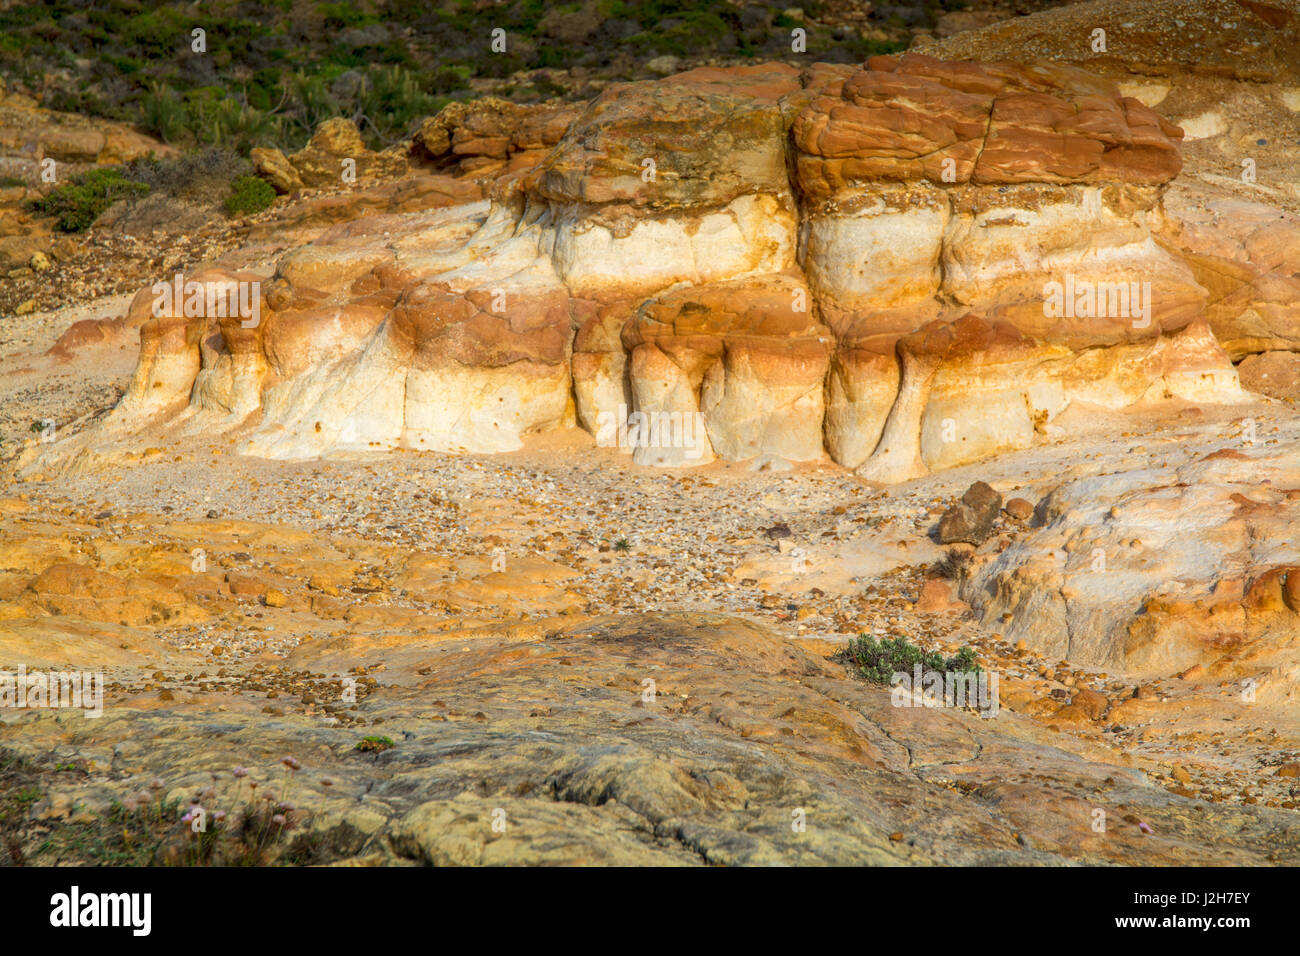 small rock formation in brown tones - Stock Image